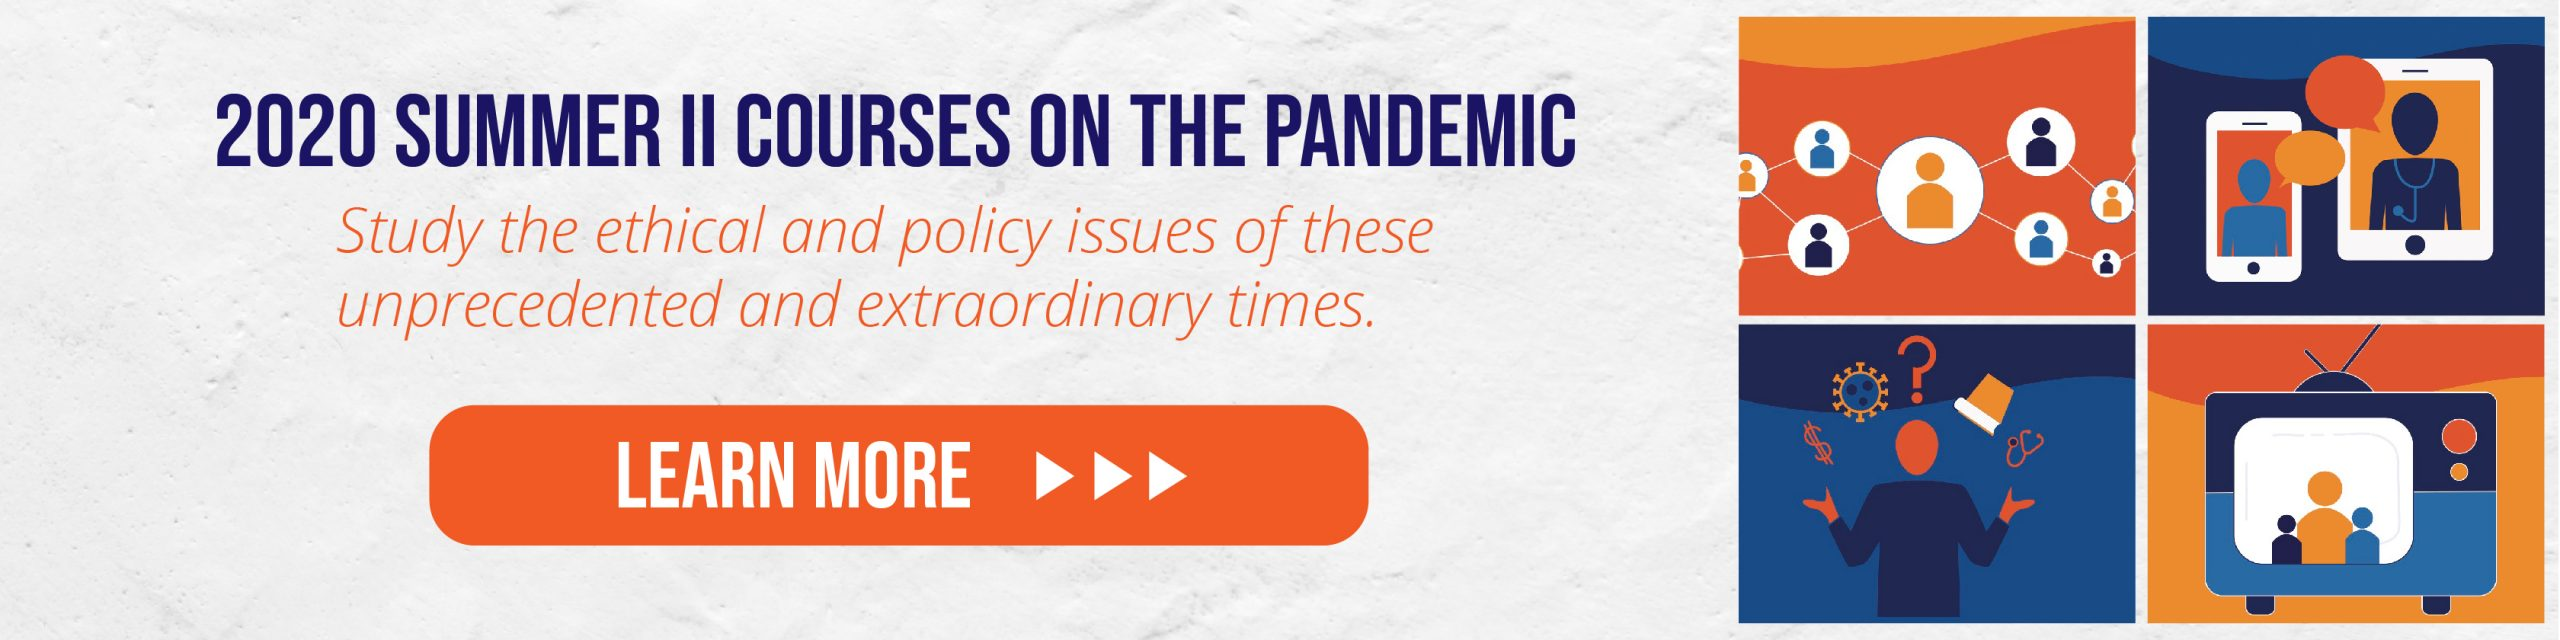 2020 Summer II Courses on the Pandemic: Study the Ethical and Policy Issues of these unprecedented and extraordinary times.